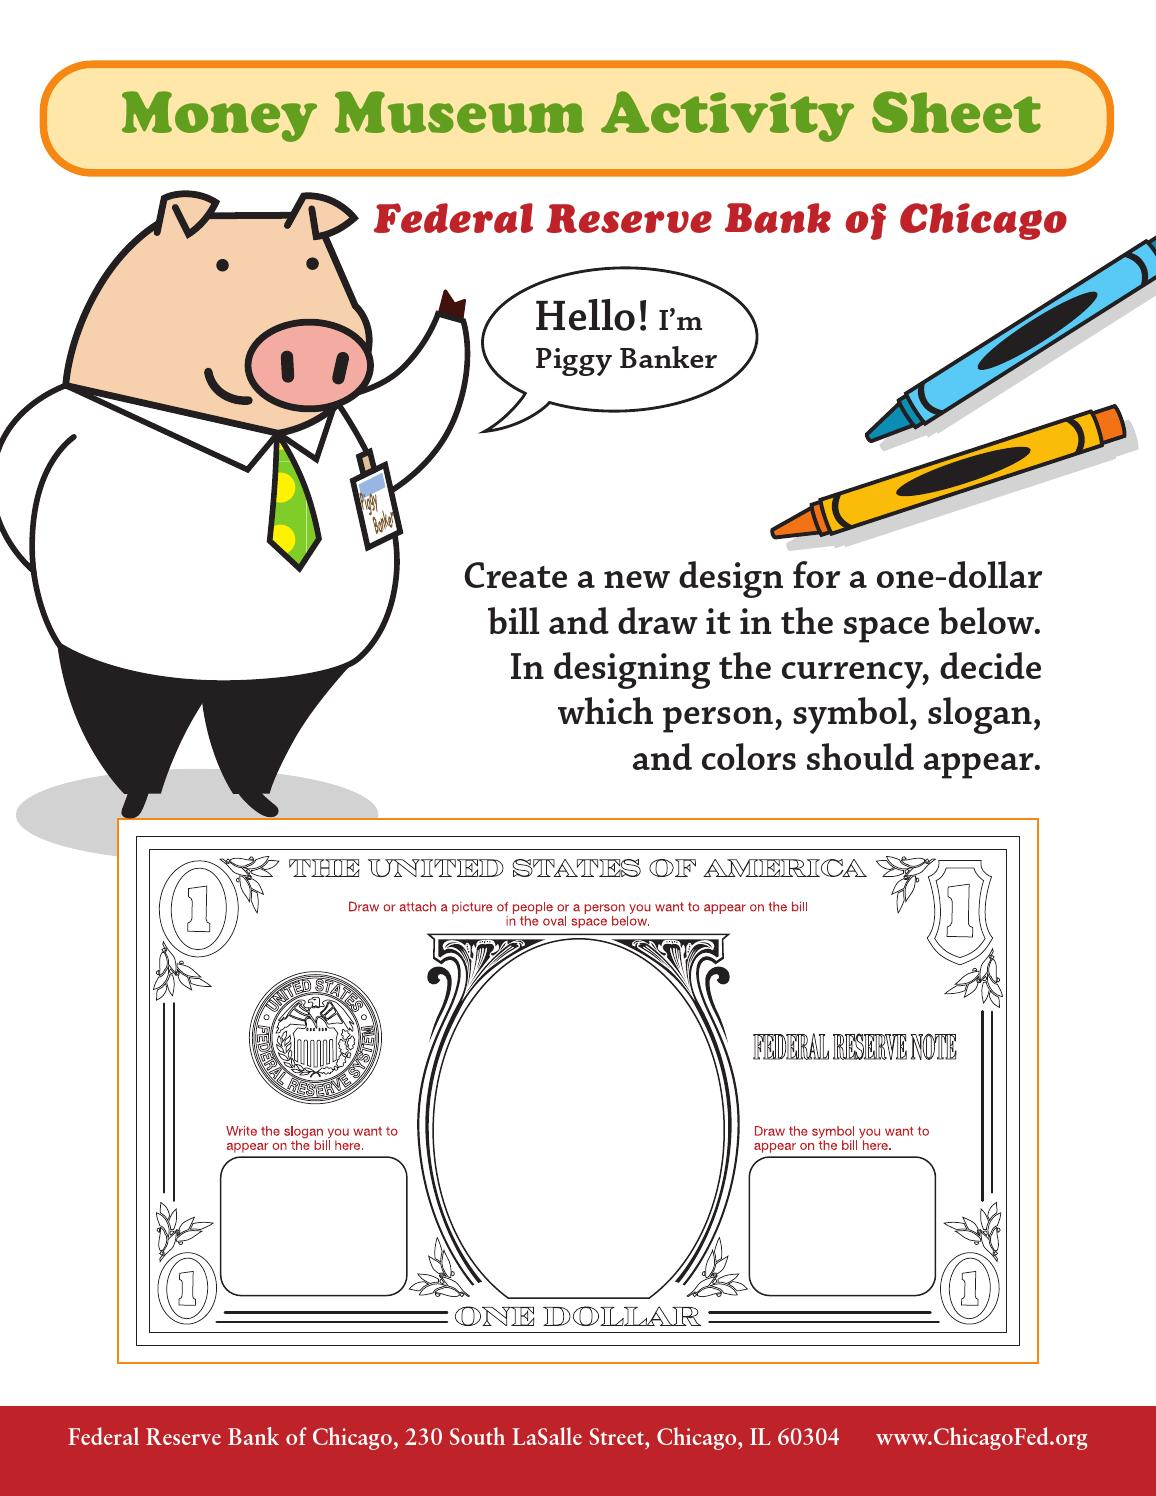 Money Museum Activity Sheet By Federal Reserve Bank Of Chicago Issuu